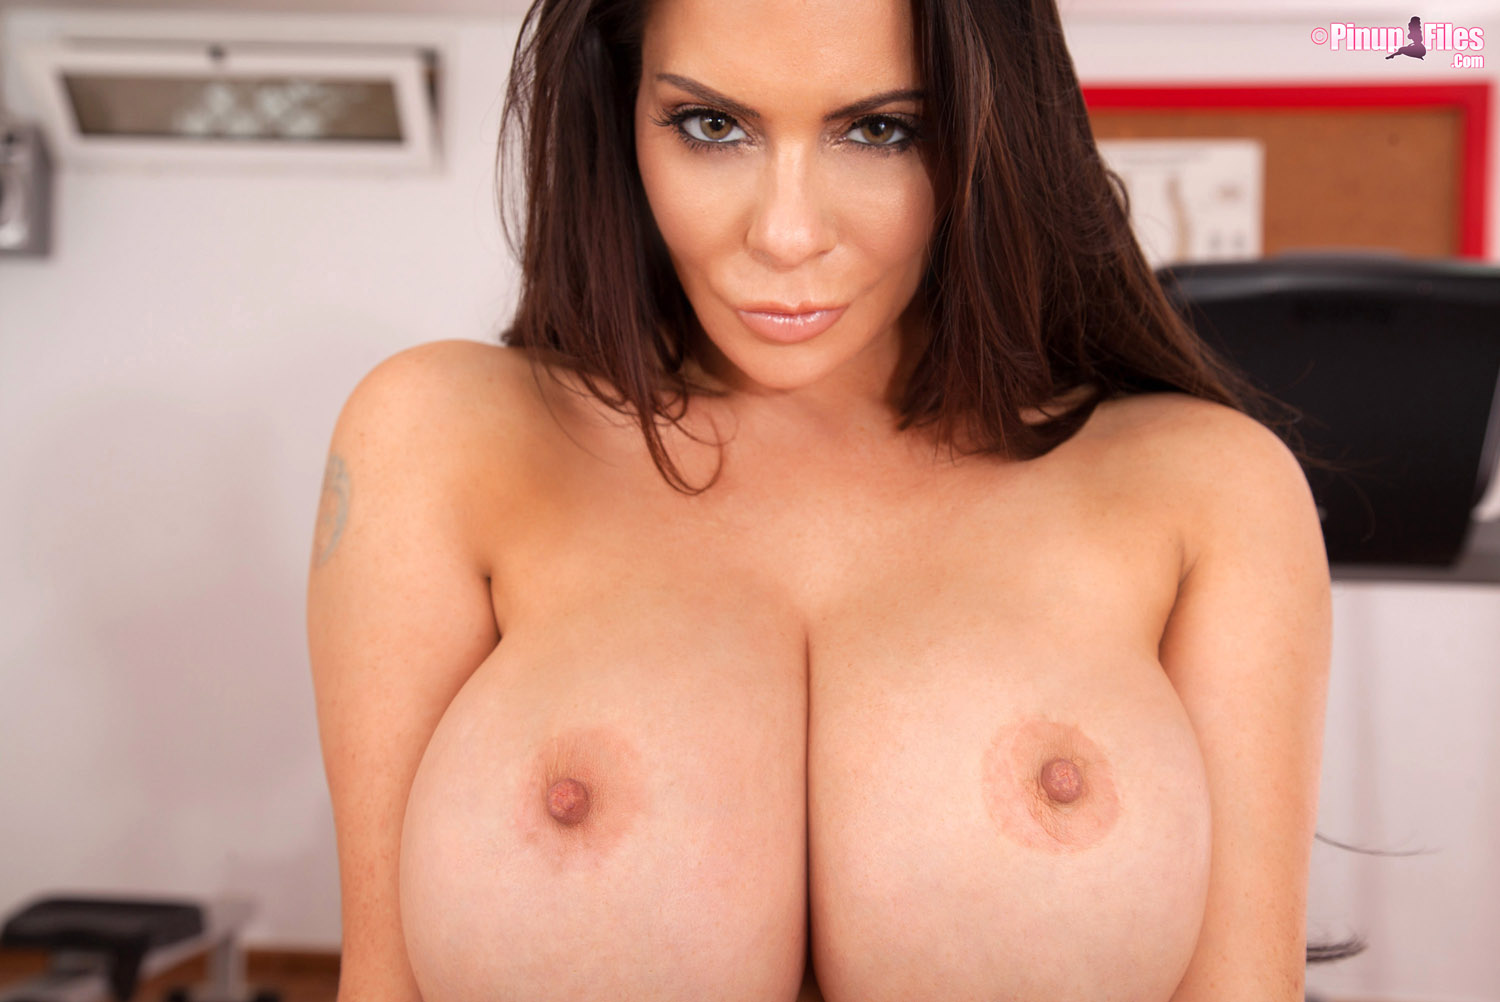 Remarkable, valuable Linsey dawn tits vids you